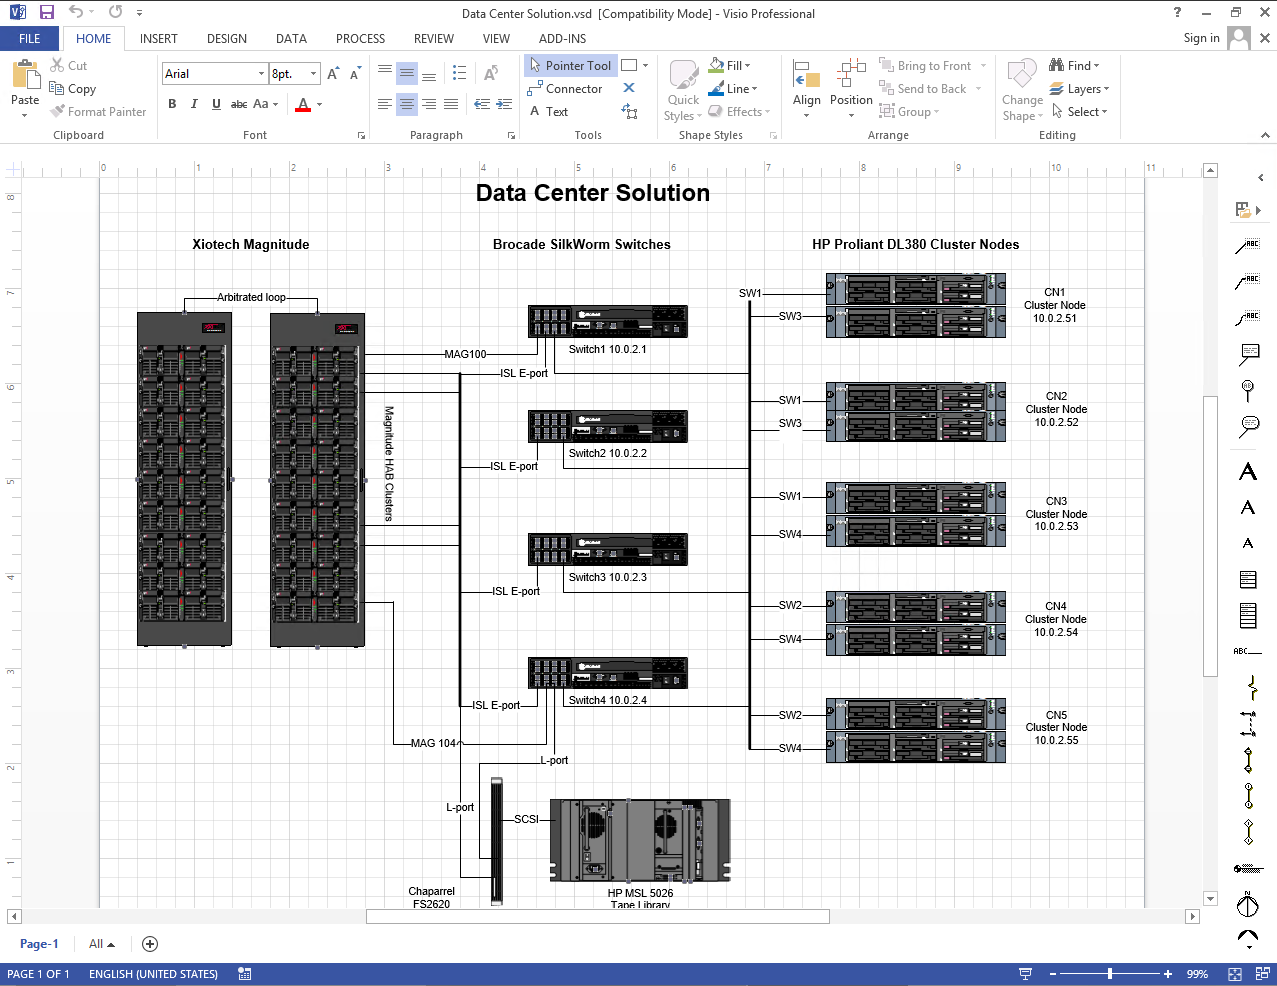 Details of diagram that uses NetZoom Visio Stencils to show data center solution interconnections between devices